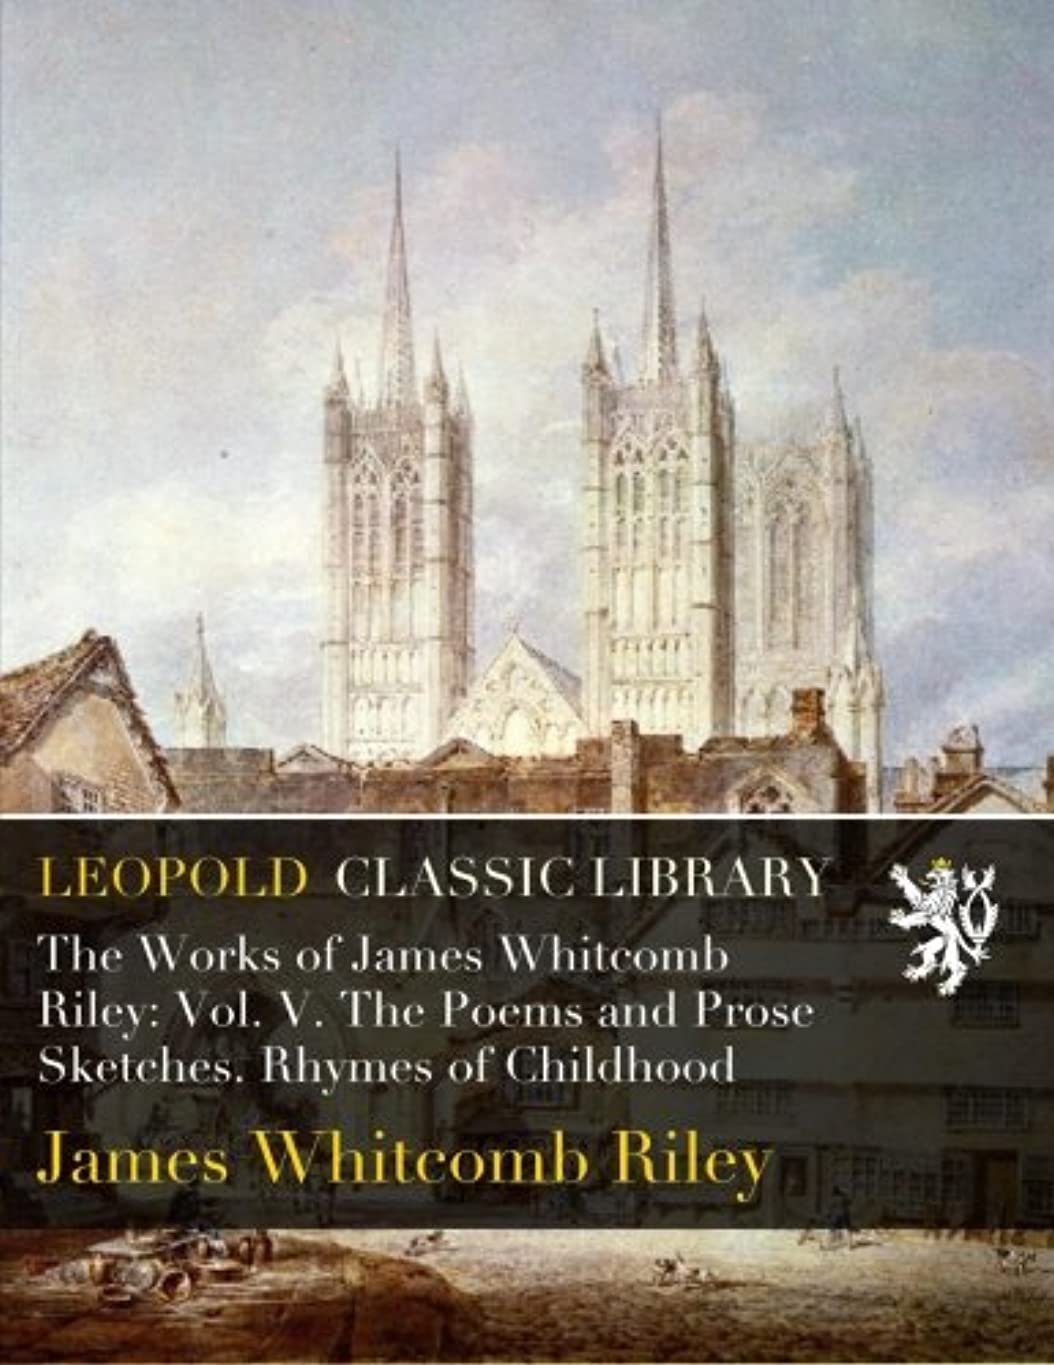 評価クールのぞき穴The Works of James Whitcomb Riley: Vol. V. The Poems and Prose Sketches. Rhymes of Childhood